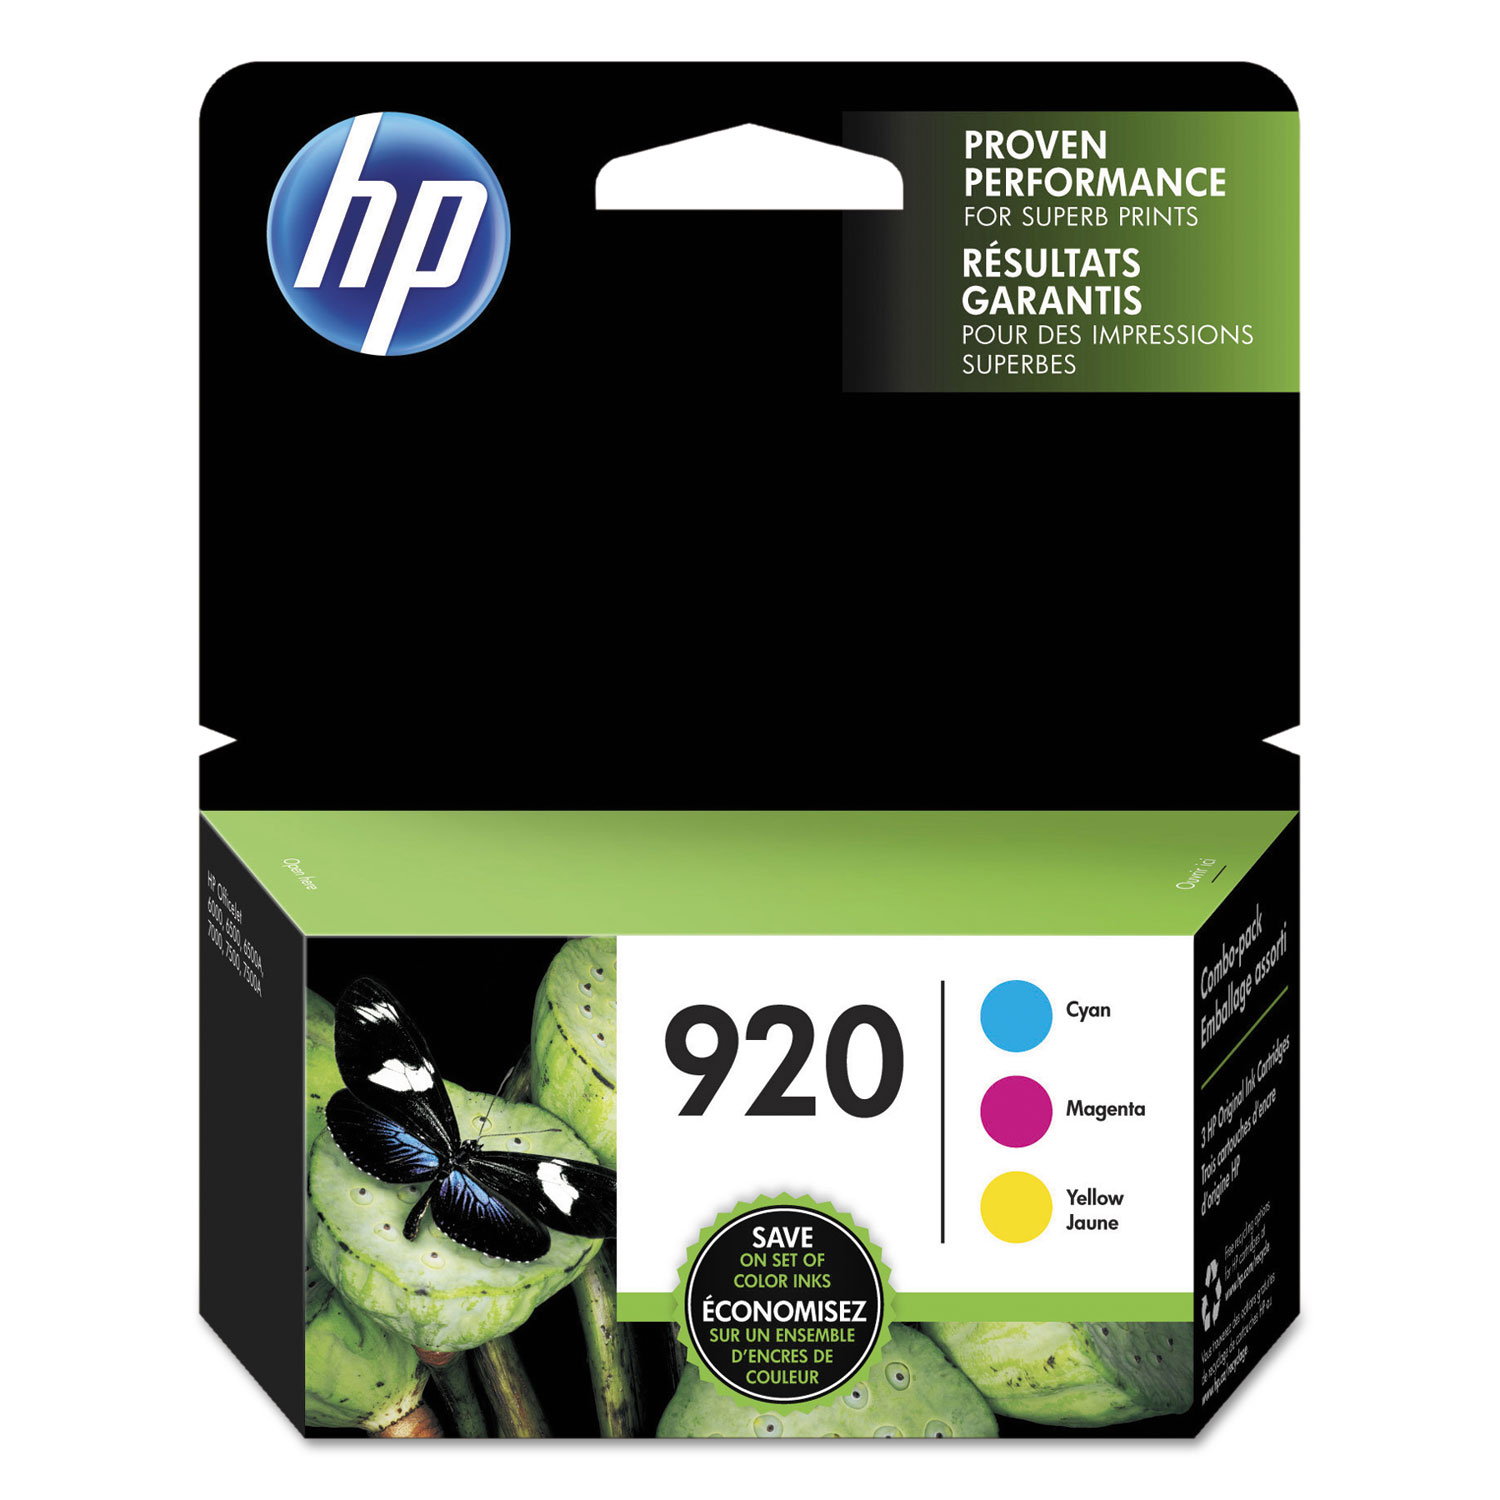 HP 920 N9H55FN Cyan, Magenta, Yellow Original Ink Cartridge